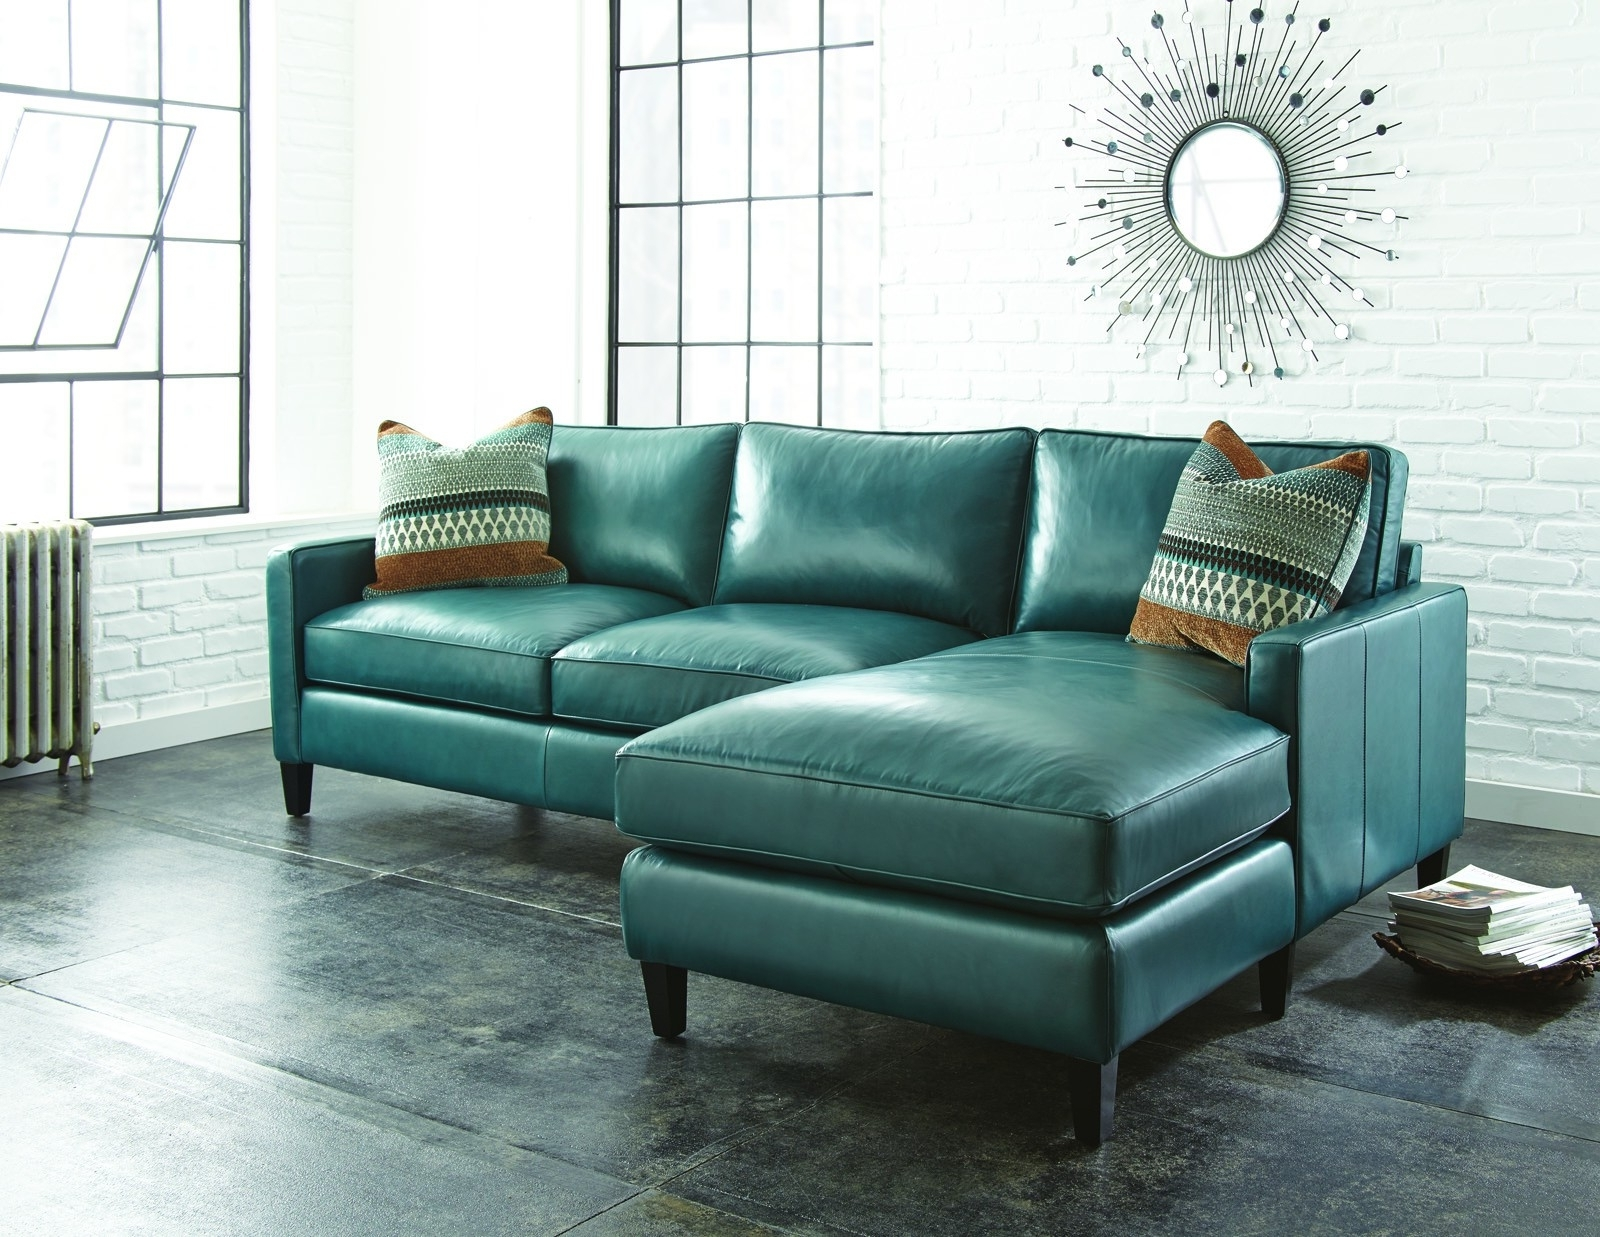 New Ideas Green Leather Sectional Sofa And Would You Put This Teal Inside Newest Green Sectional Sofas With Chaise (View 15 of 15)